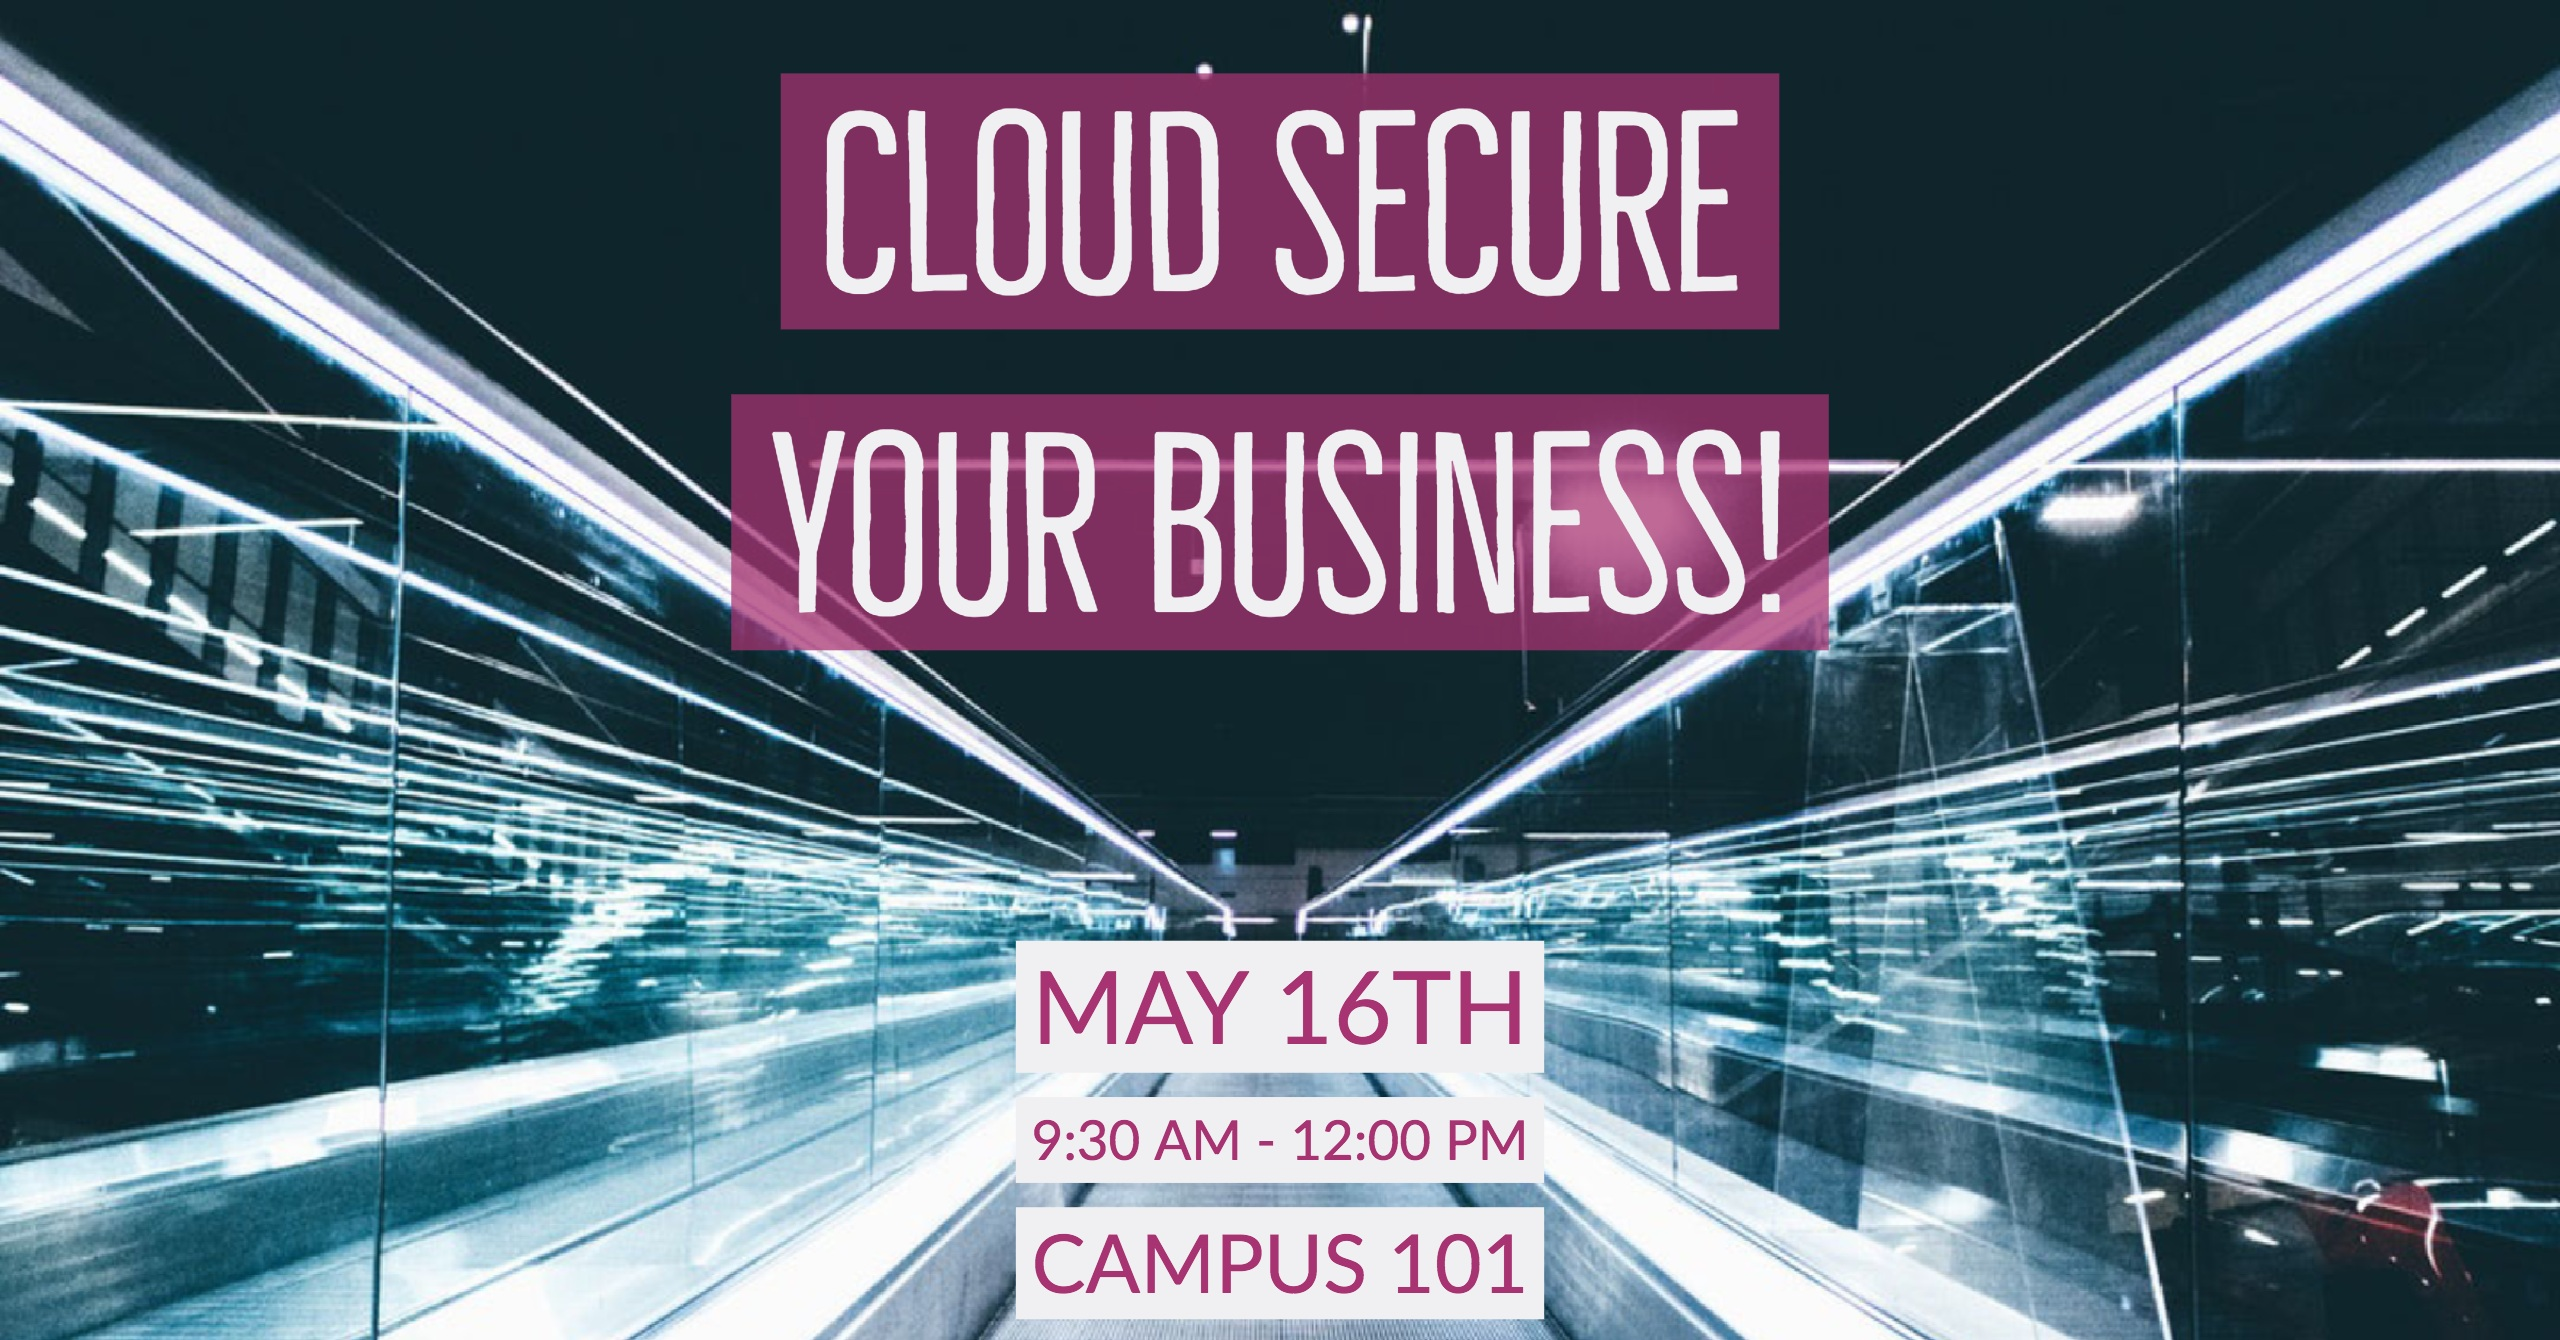 Cloud Secure your Business 4.jpg